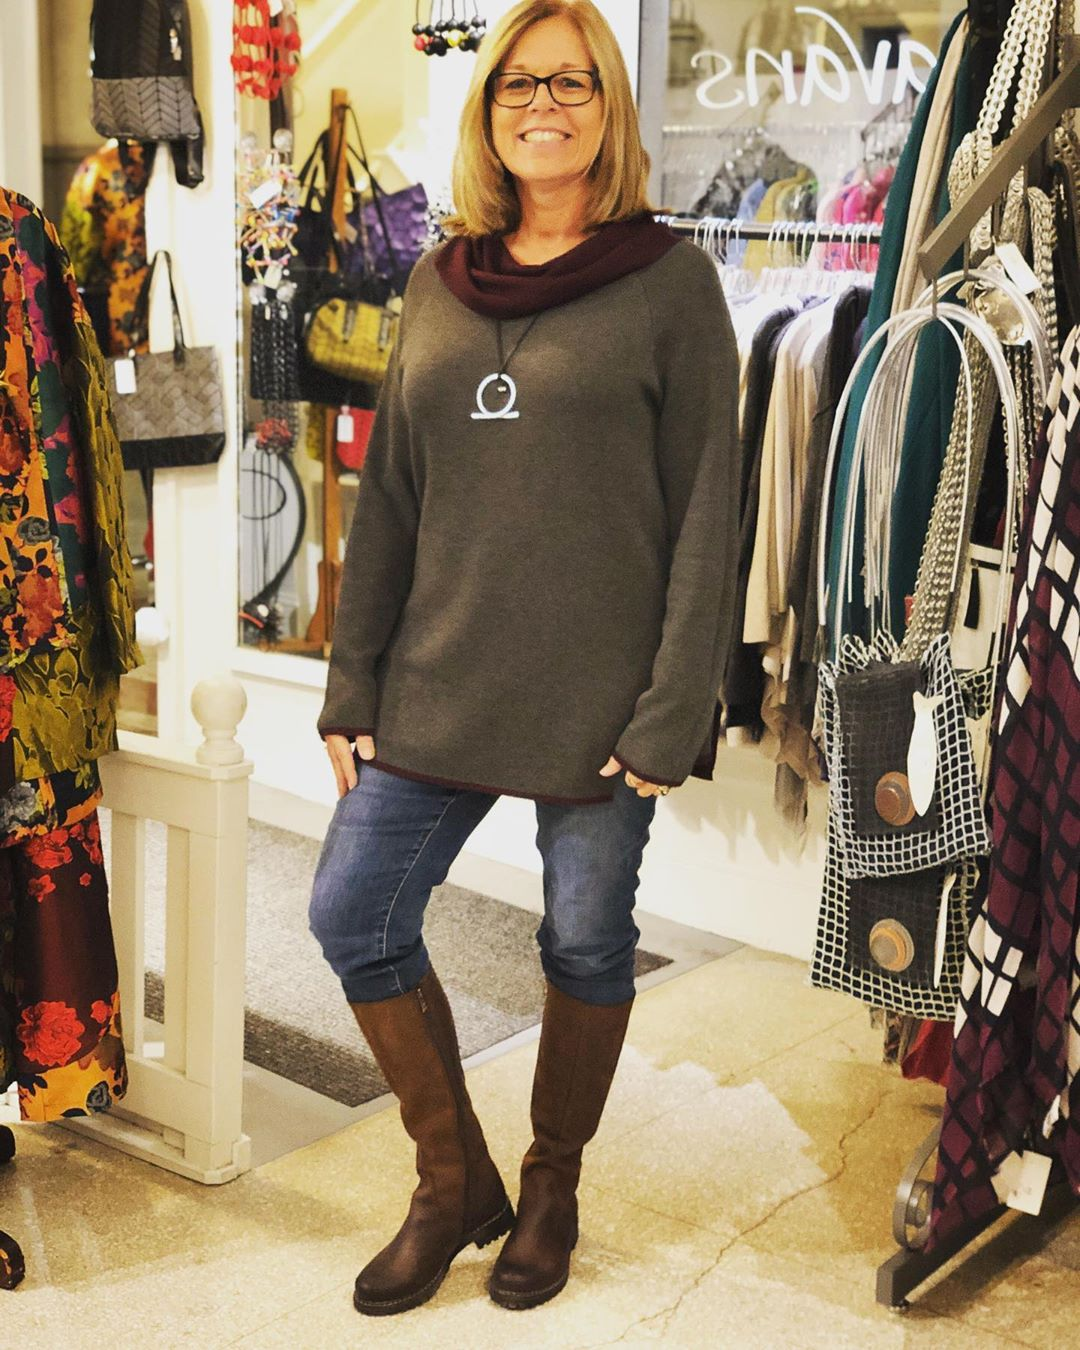 I got to dress Trisha from West Virginia in head to toe Caravans! She loved it all so much she wore it all right out the door! She's in a fabulous reversible sweater by @ostapparel leather boots by @v_italia_chicago and necklace by @escapefromparisbydom @grovearcade @caravans_asheville